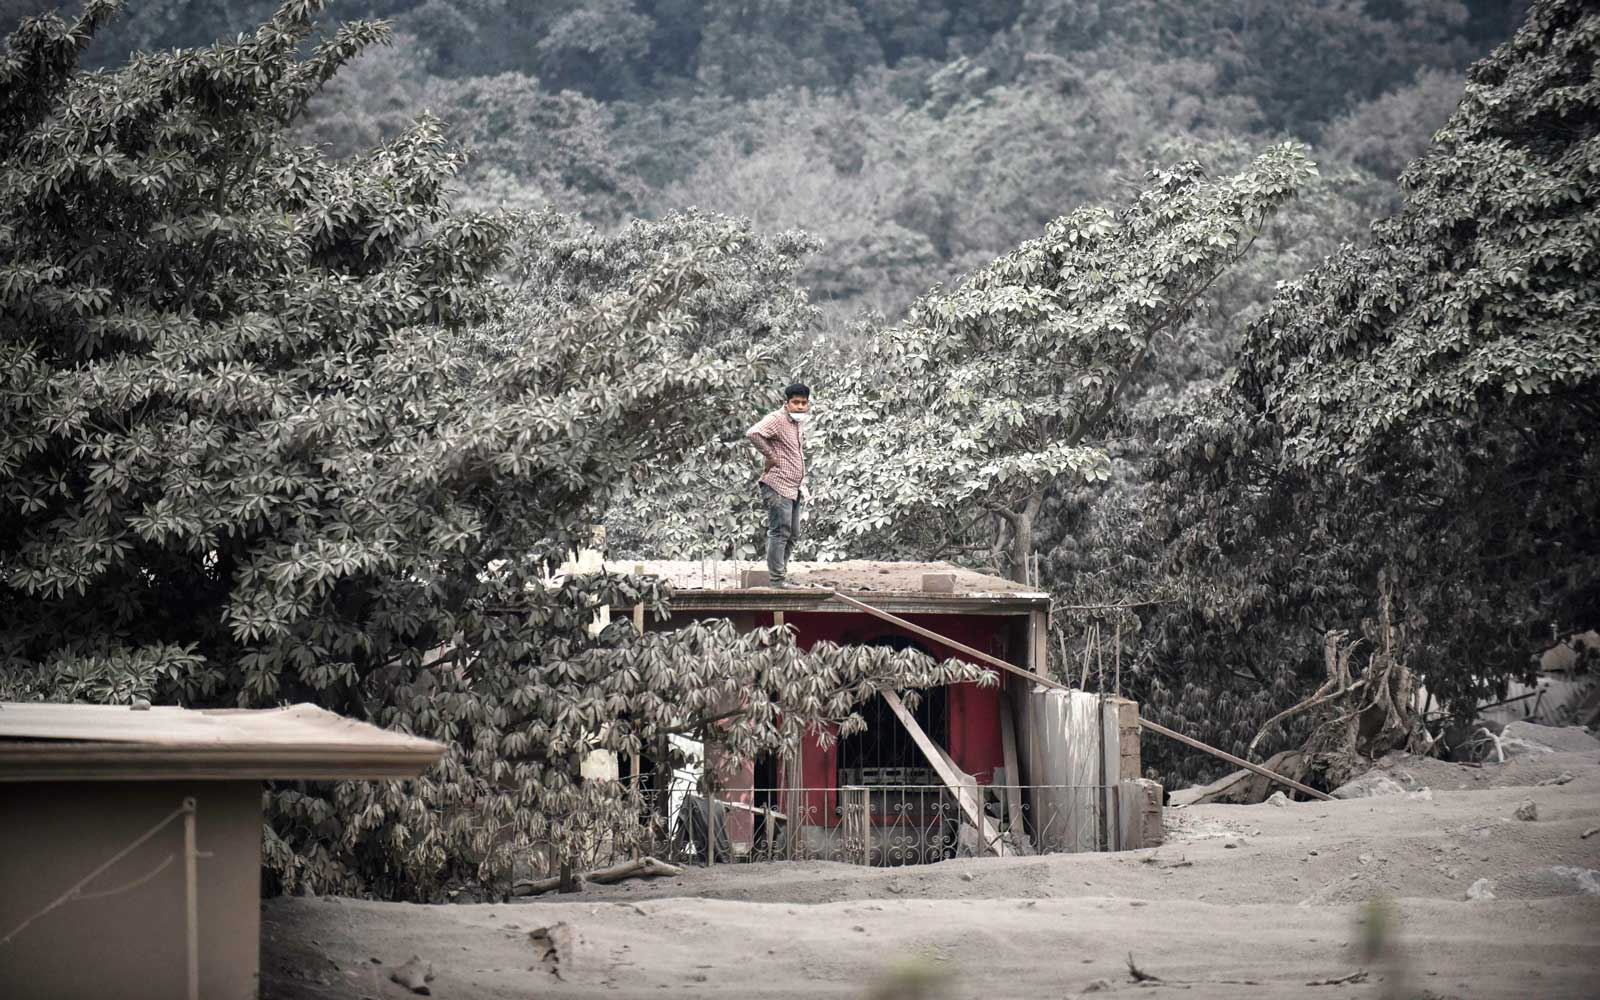 A man stands on the roof of a house in the ash-covered village of San Miguel Los Lotes, in Escuintla Department, about 35 km southwest of Guatemala City, taken on June 4, 2018, after the eruption of the Fuego Volcano.